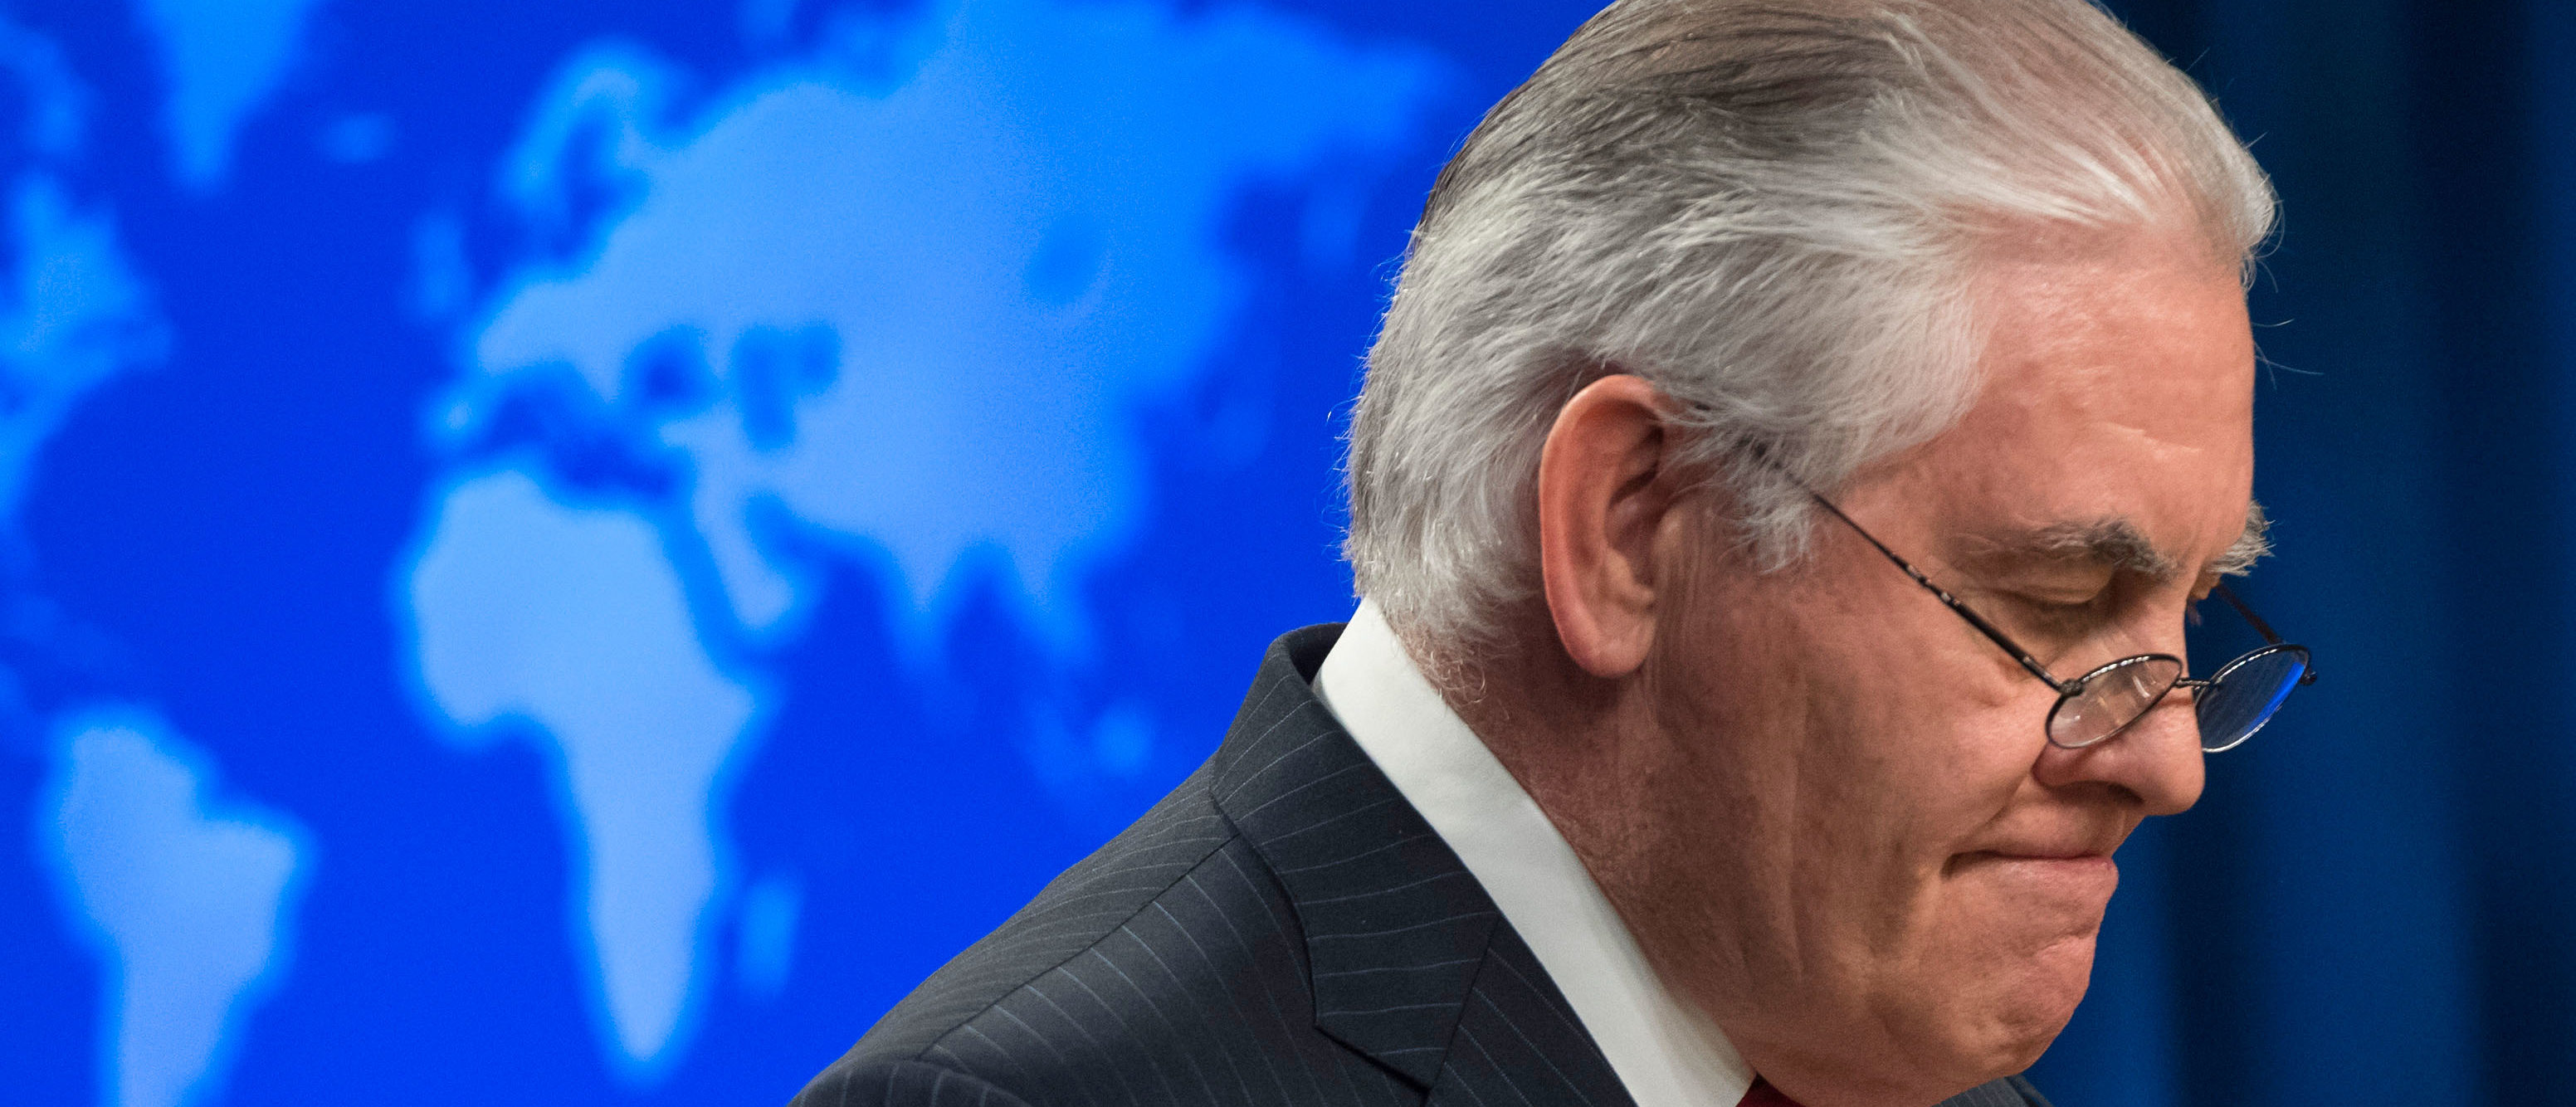 Rex Tillerson, outgoing US Secretary of State makes a statement after his dismissal at the State Department in Washington, DC, March 13, 2018.  Secretary of State Rex Tillerson is the latest top official to leave a US administration where turnover has been inordinately high. / AFP PHOTO / SAUL LOEB        (Photo credit should read SAUL LOEB/AFP/Getty Images)